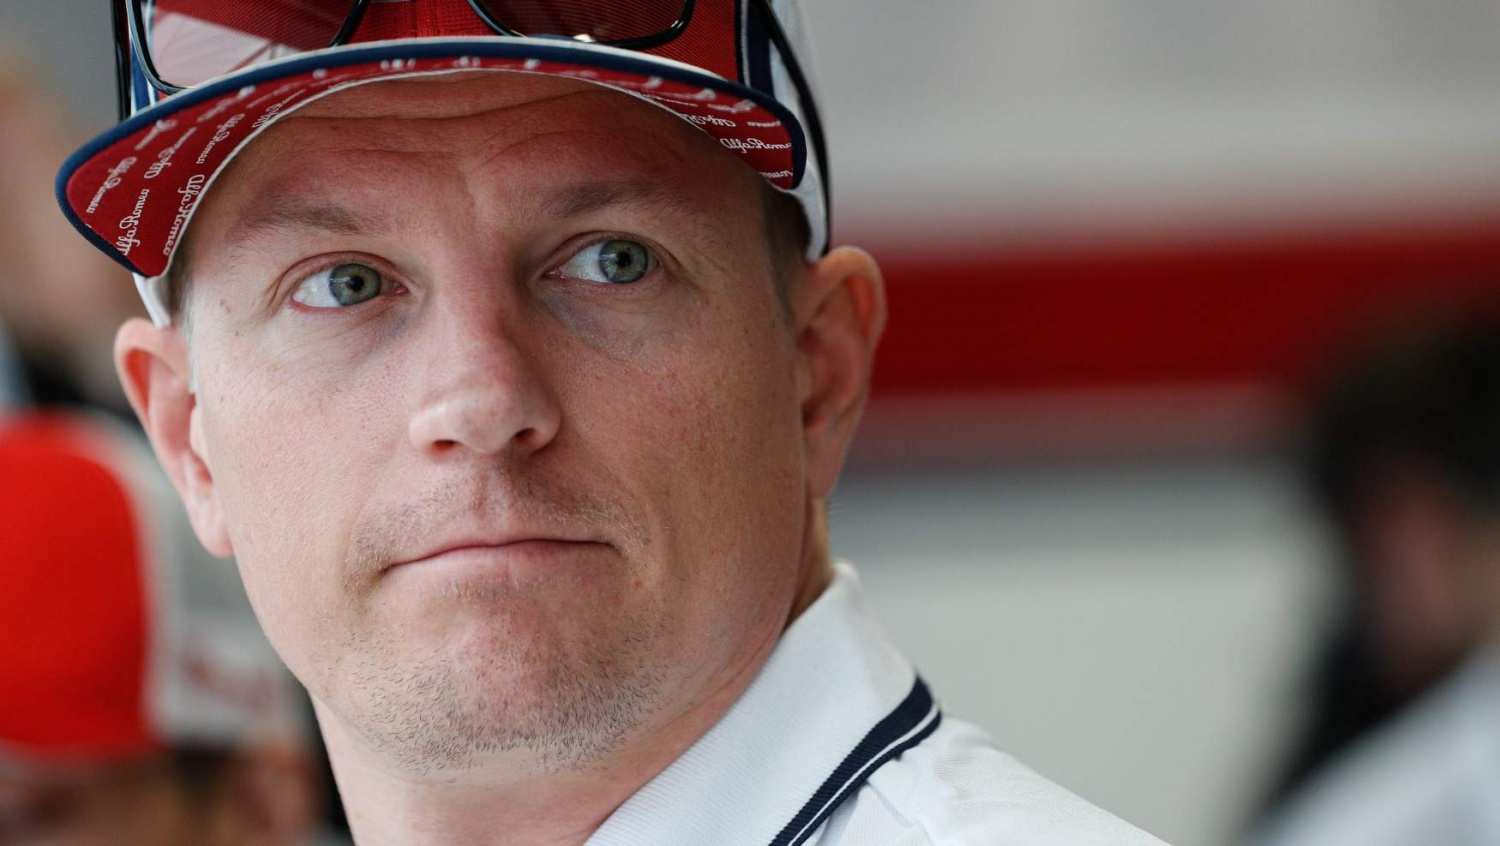 Report: Kimi Raikkonen rejuvenated, relaxed and unplugged